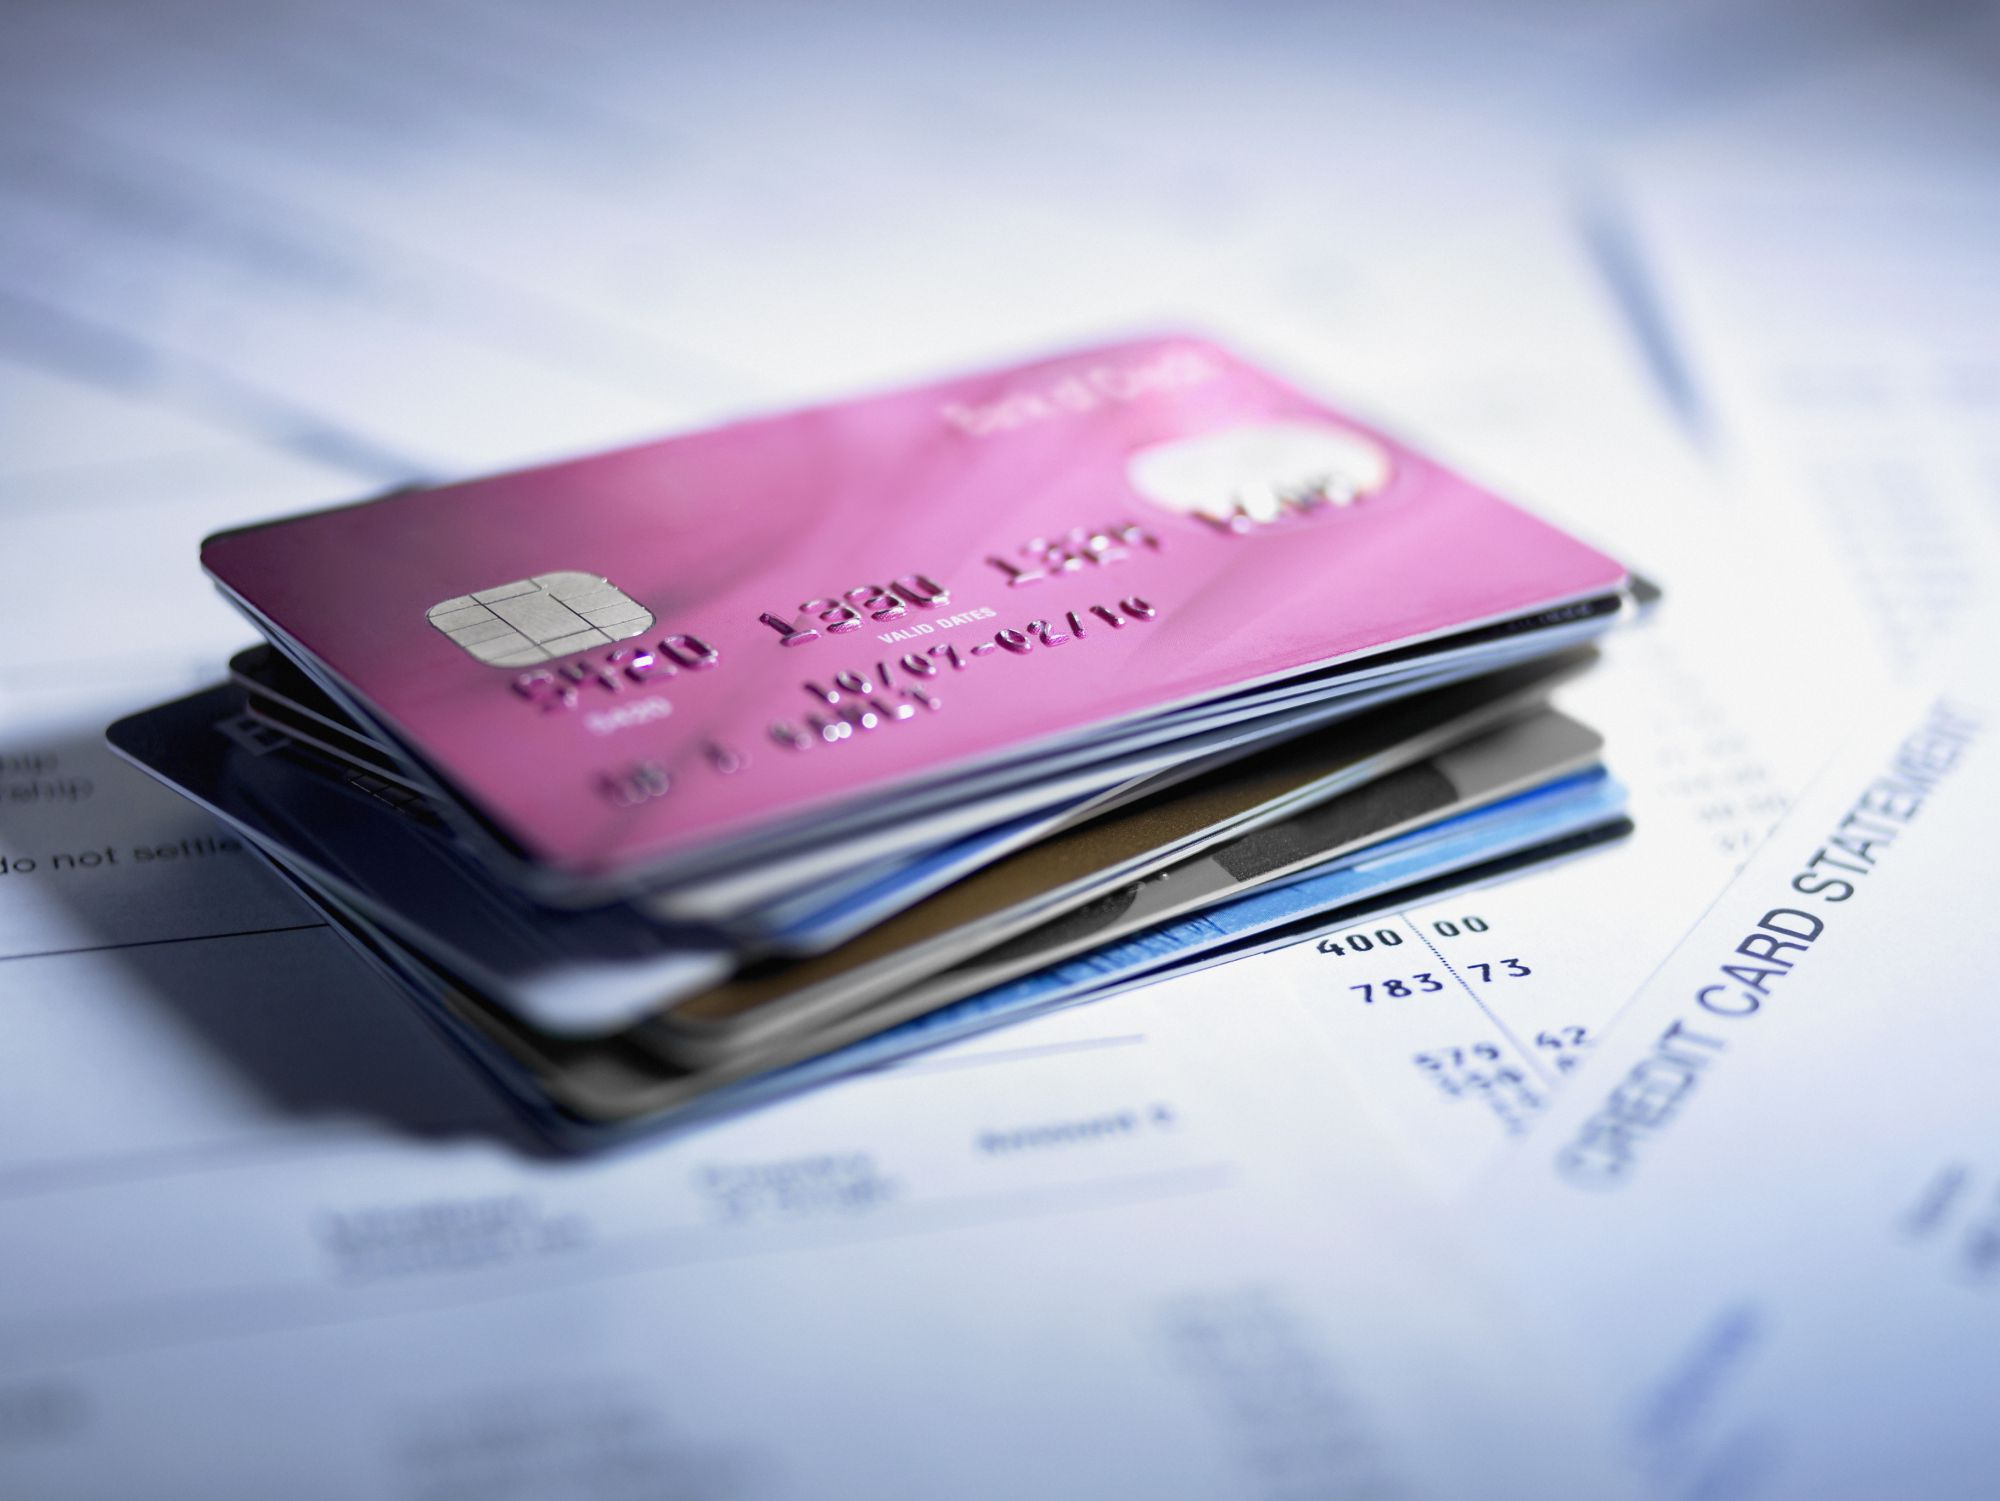 These are the new upcoming changes to your credit score and credit cards